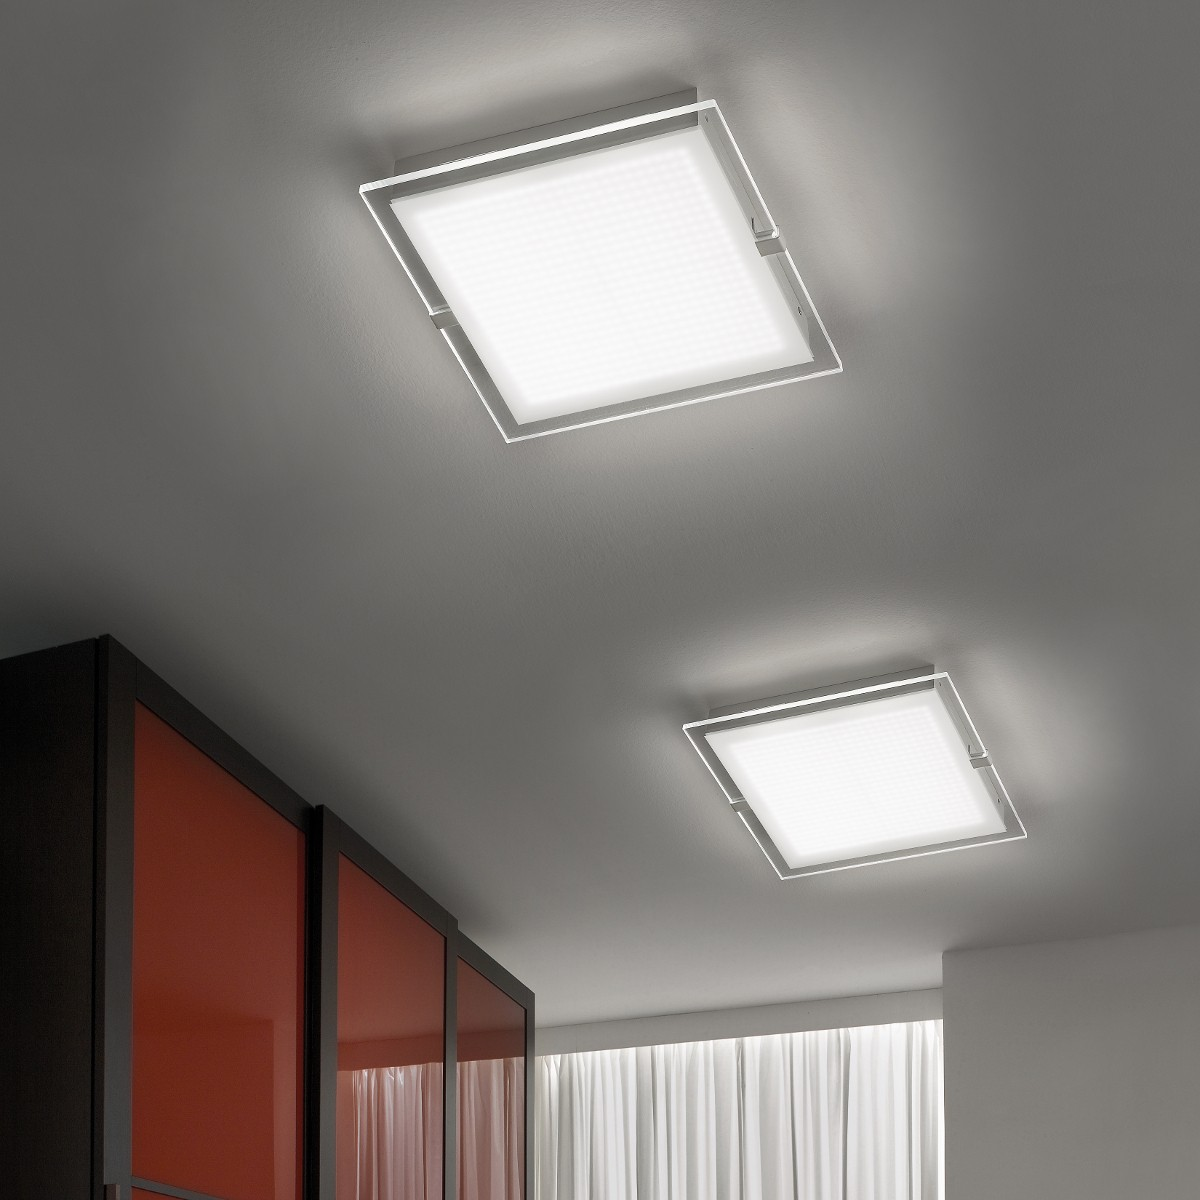 Espo casa salotti moderni for Lampadari a led per interni